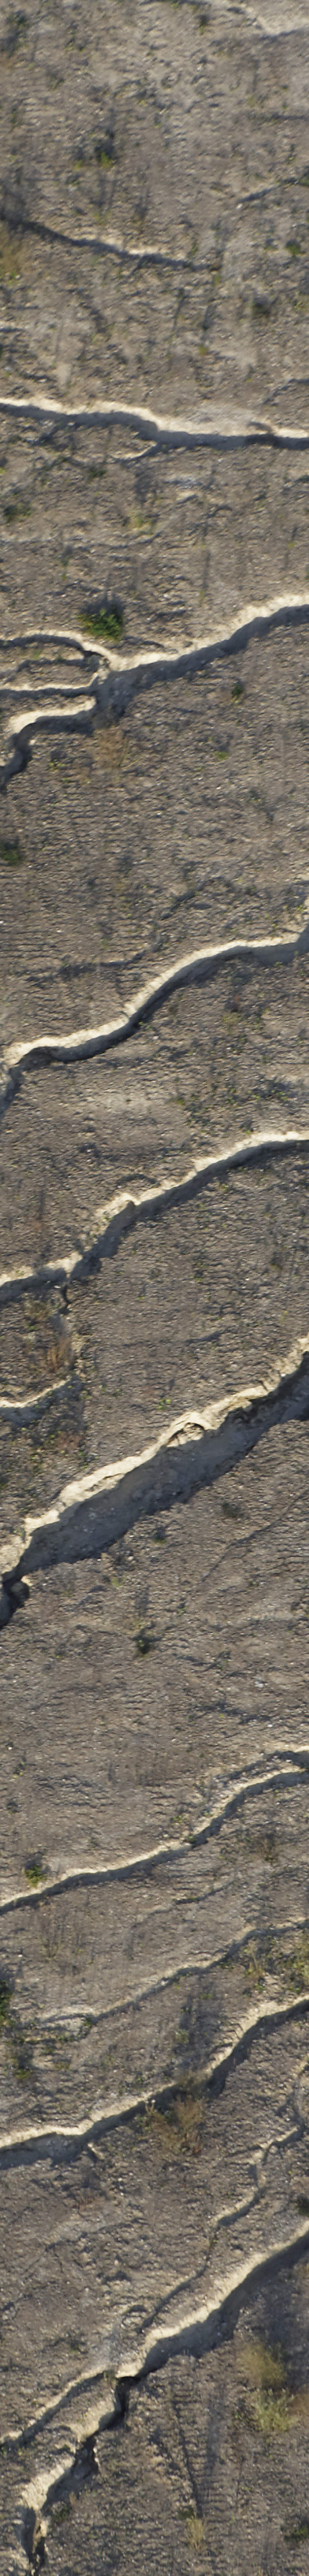 Aerial view of traces of erosion - Klaus Leidorf Aerial Photography